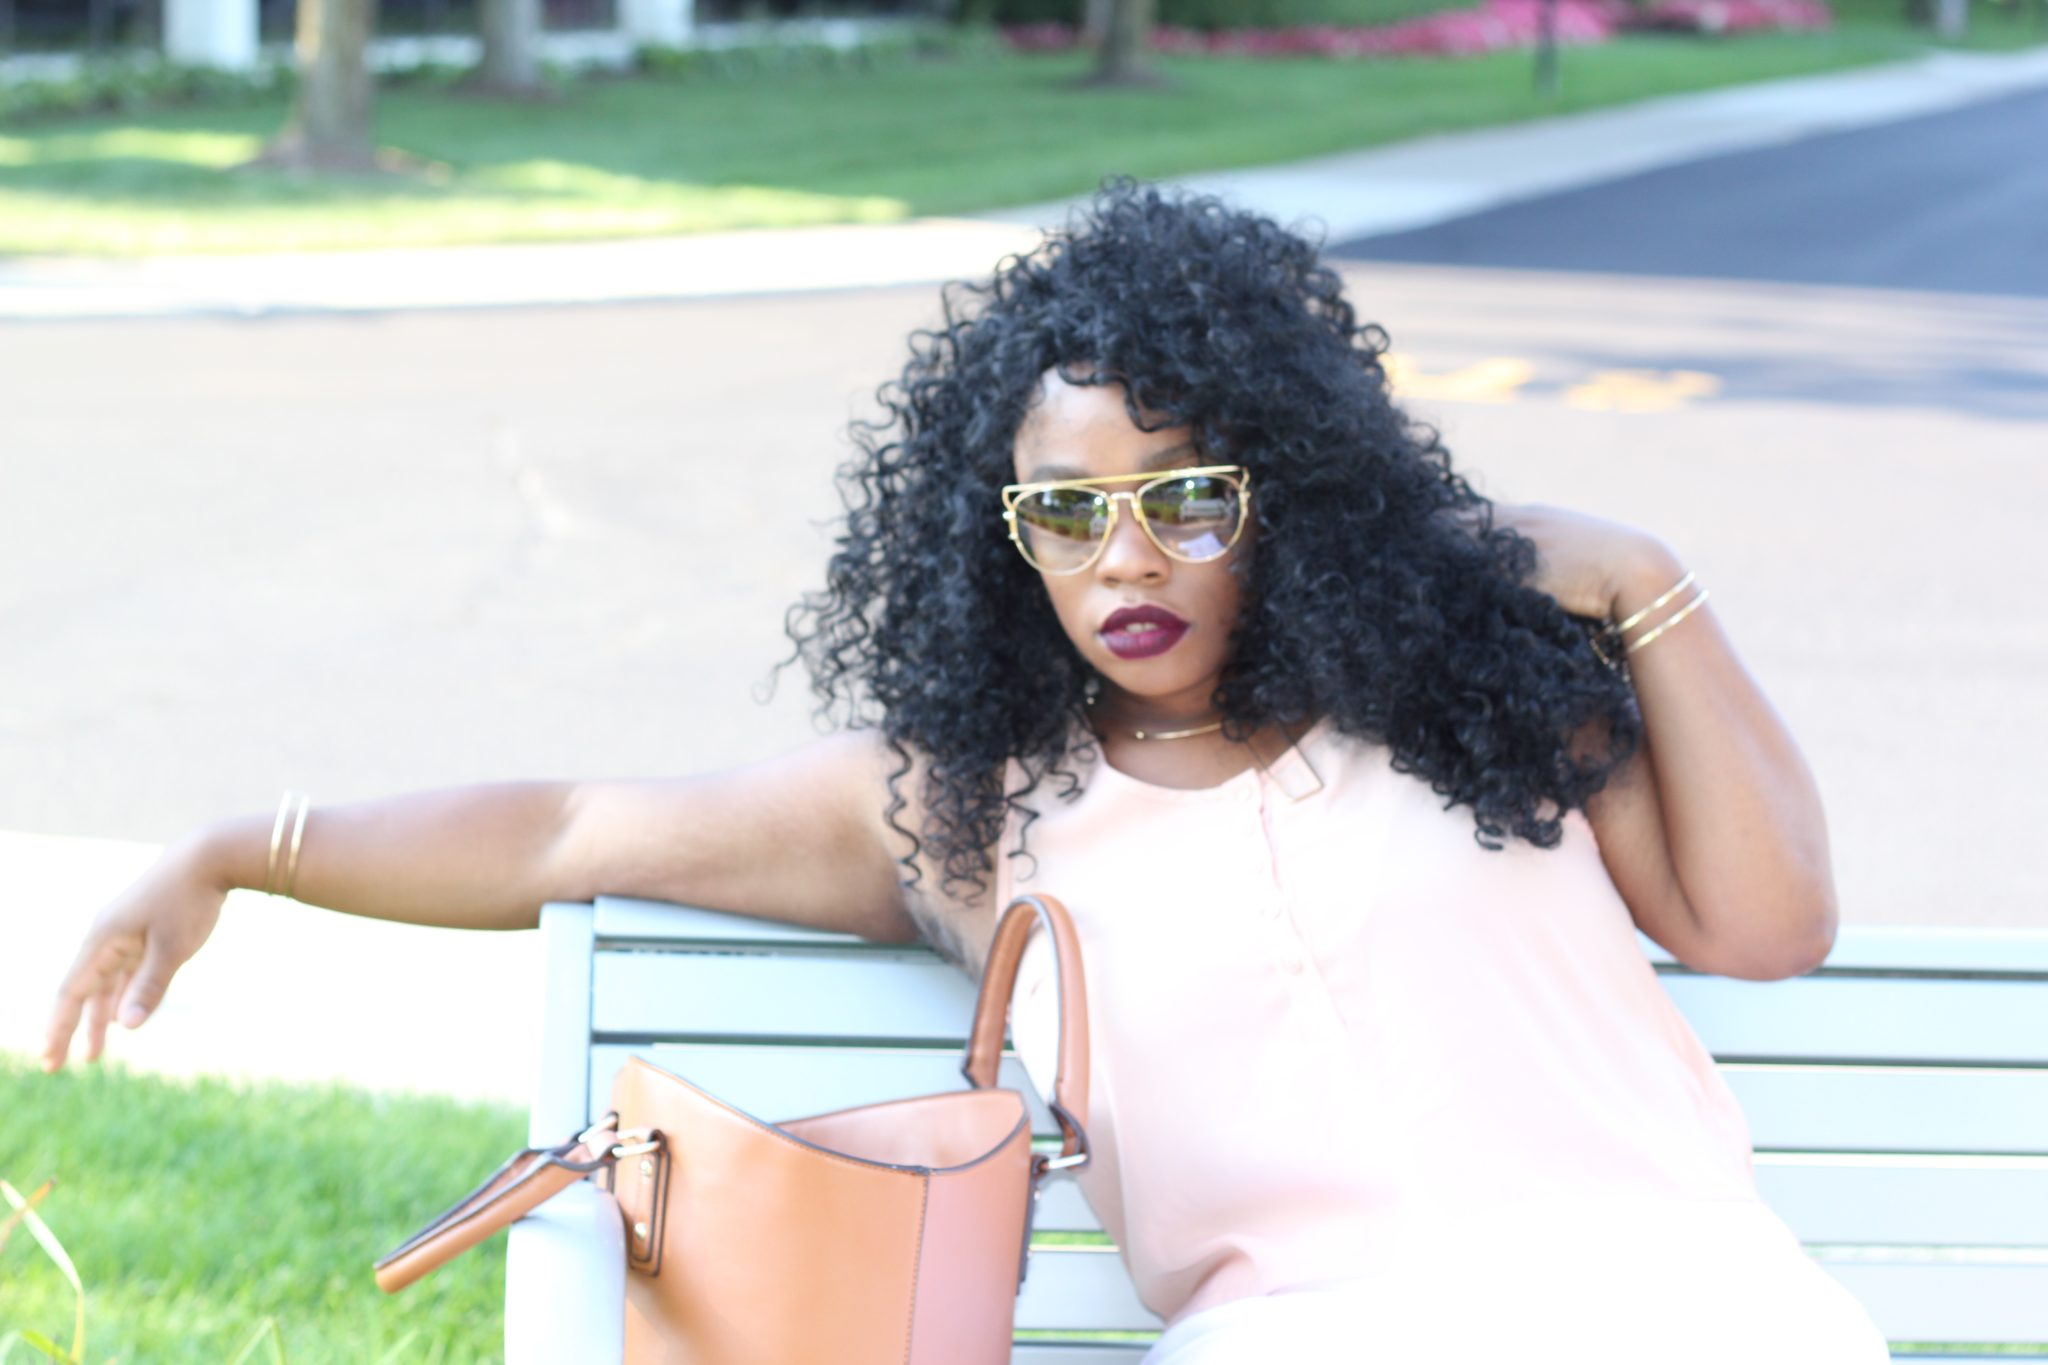 img_7087 Living for the Weekend! Fashion Fashion Nova Forever 21 Jeffrey Campbell Shoes Justfab OOTD Styling Thrifting Uncategorized